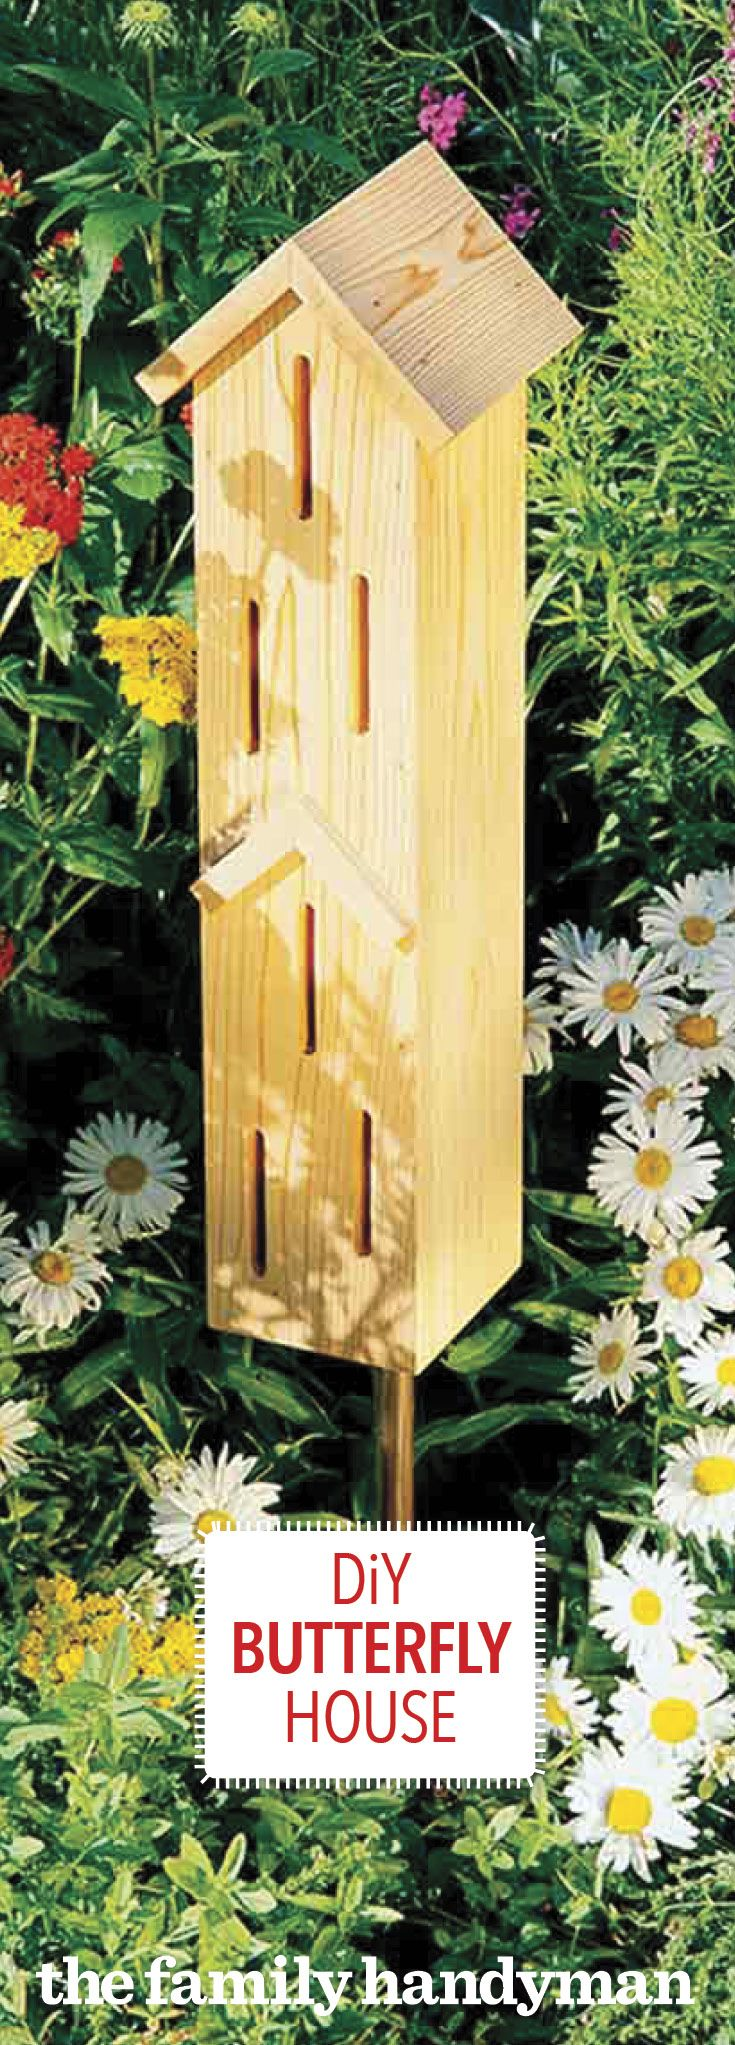 How to Make a DIY Butterfly House